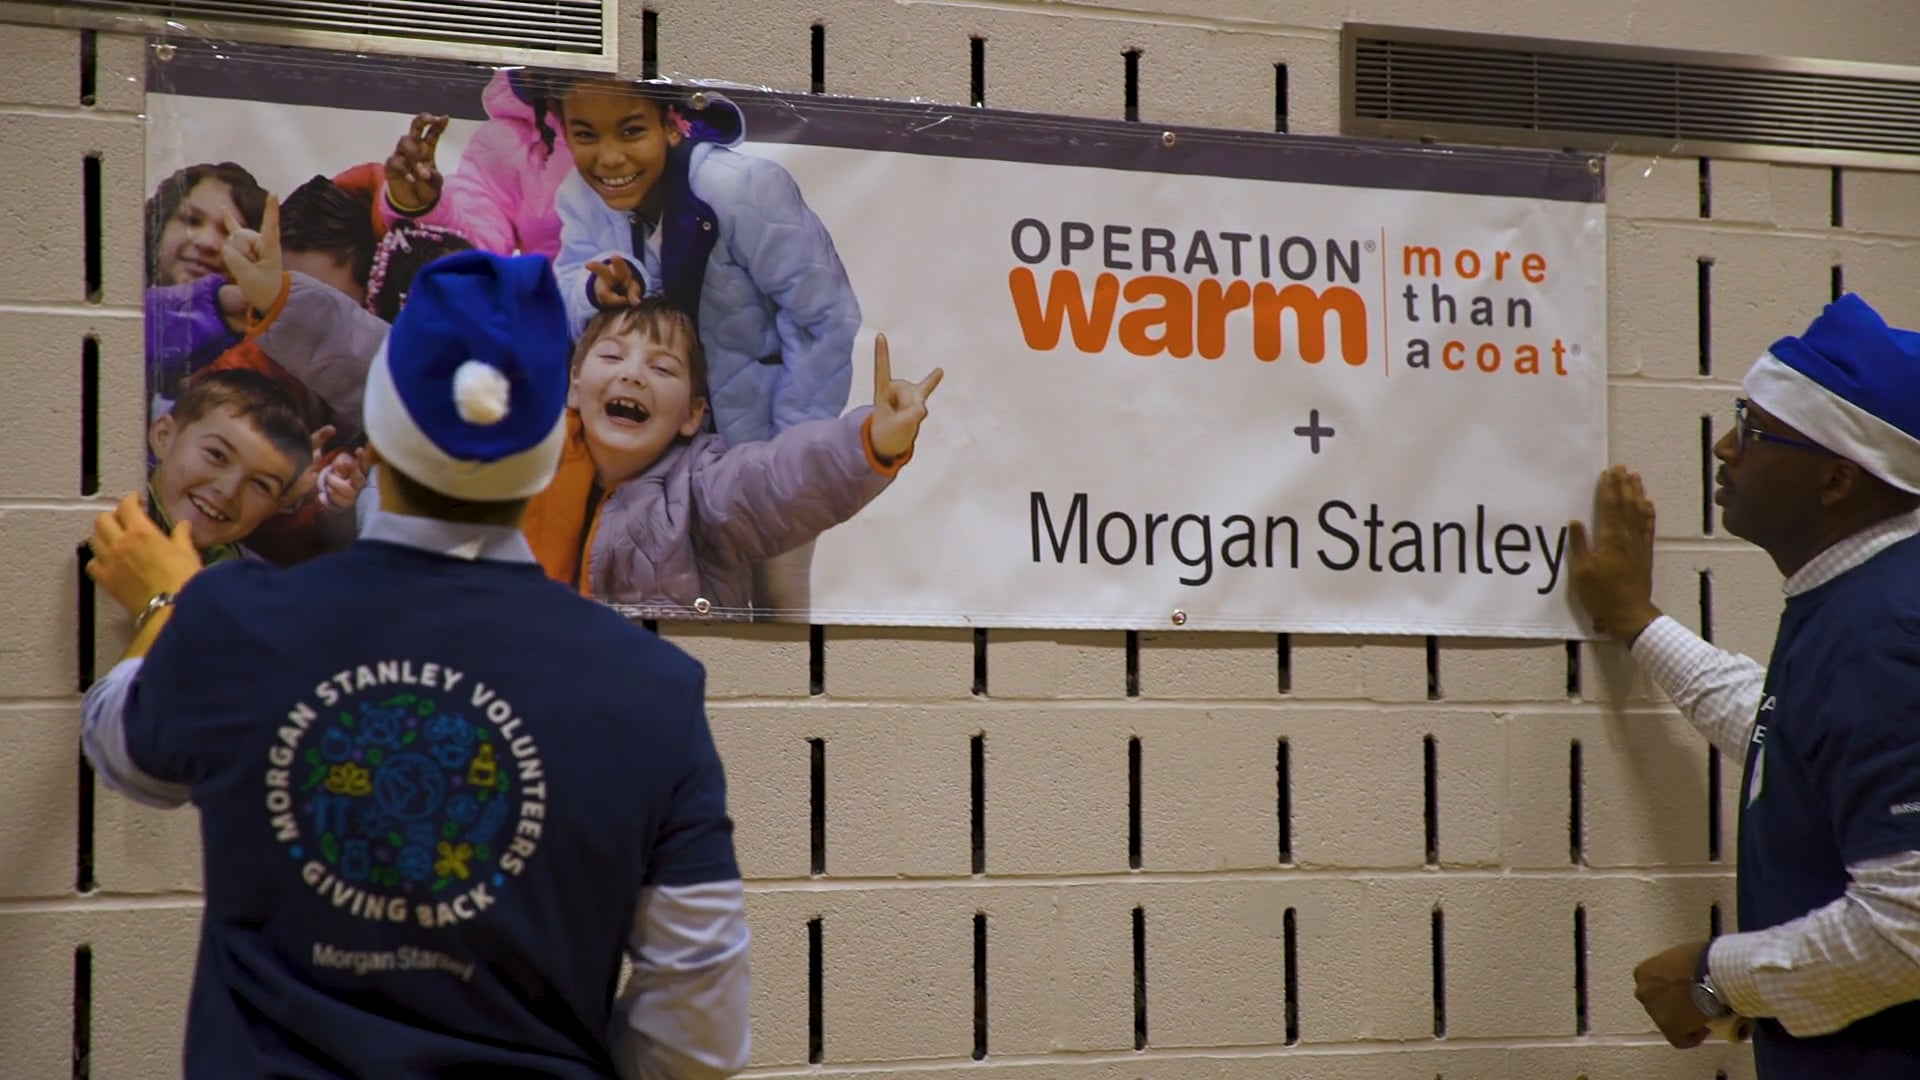 Operation Warm + Morgan Stanley Corporate Charity Event